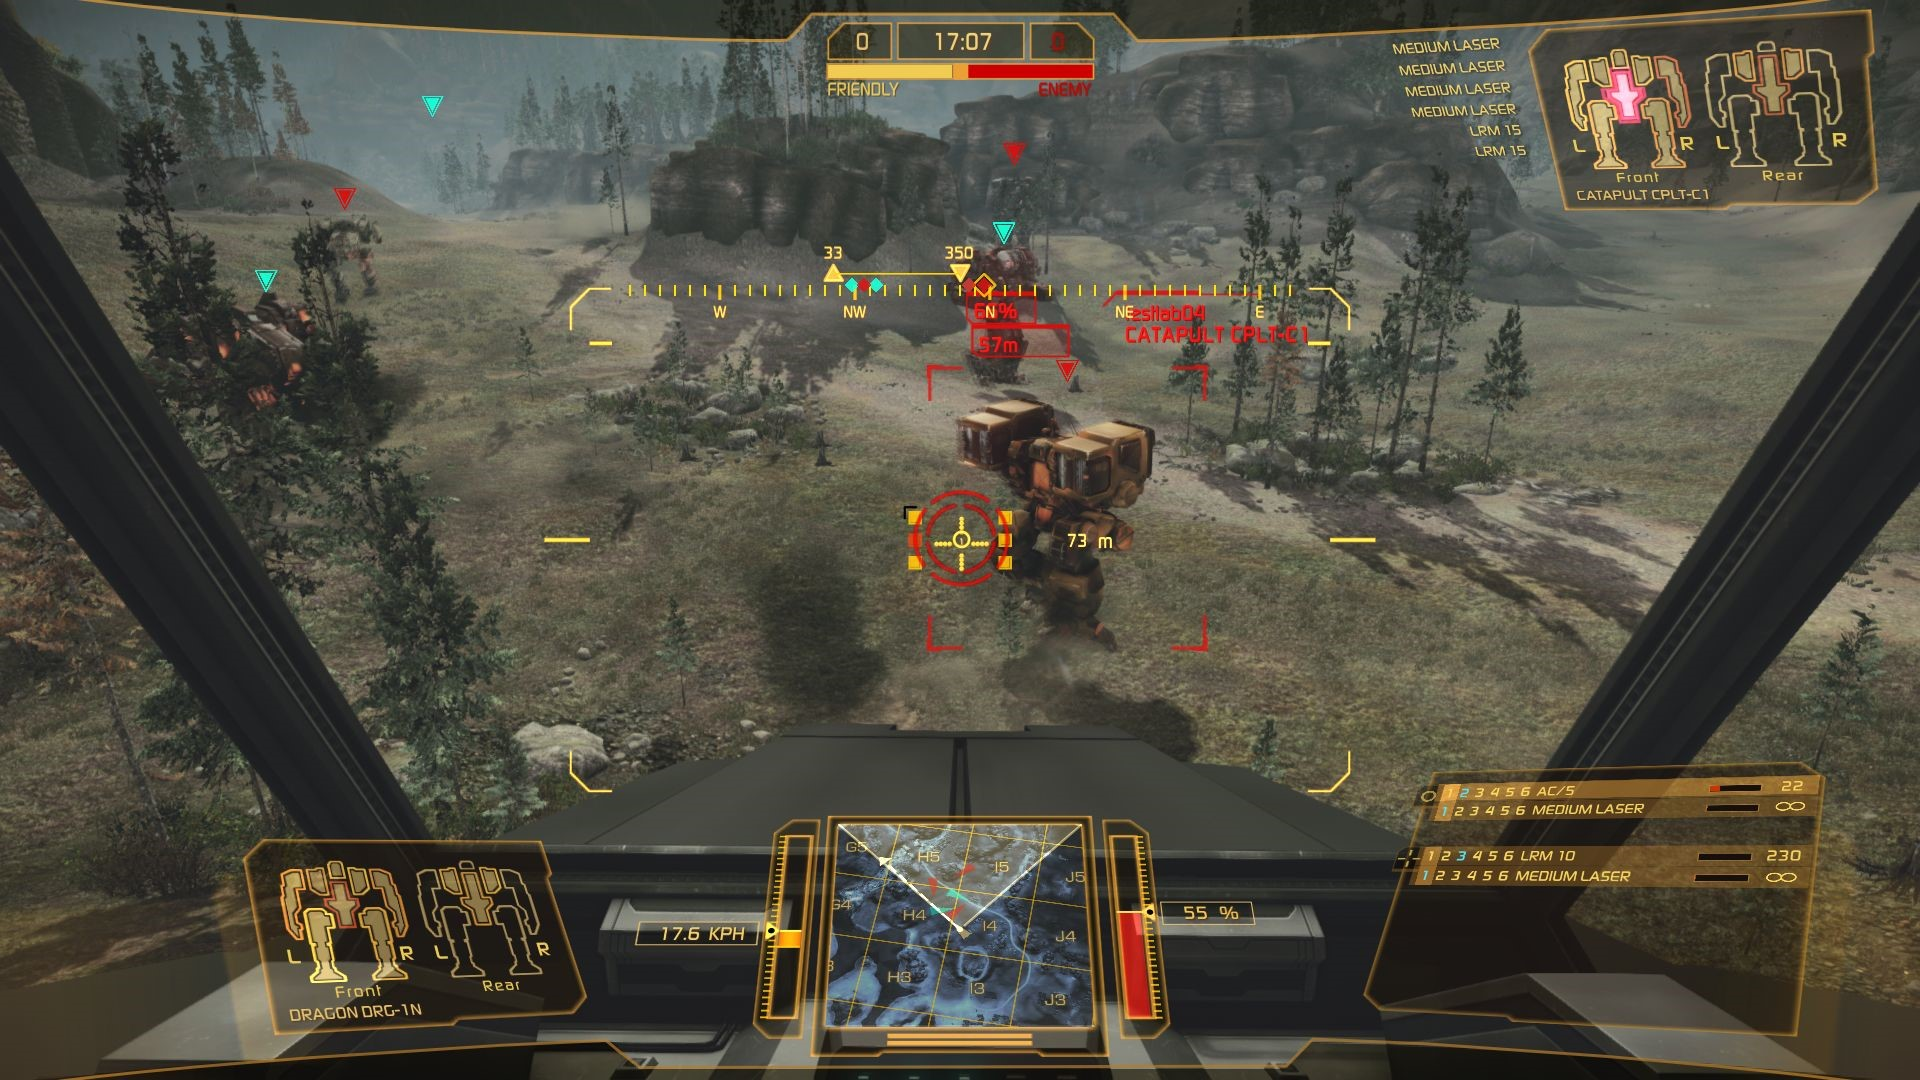 free to play ftp action mmo rpg shooter fps fair best new games to play top 21 2017 Mechwarrior Online gameplay